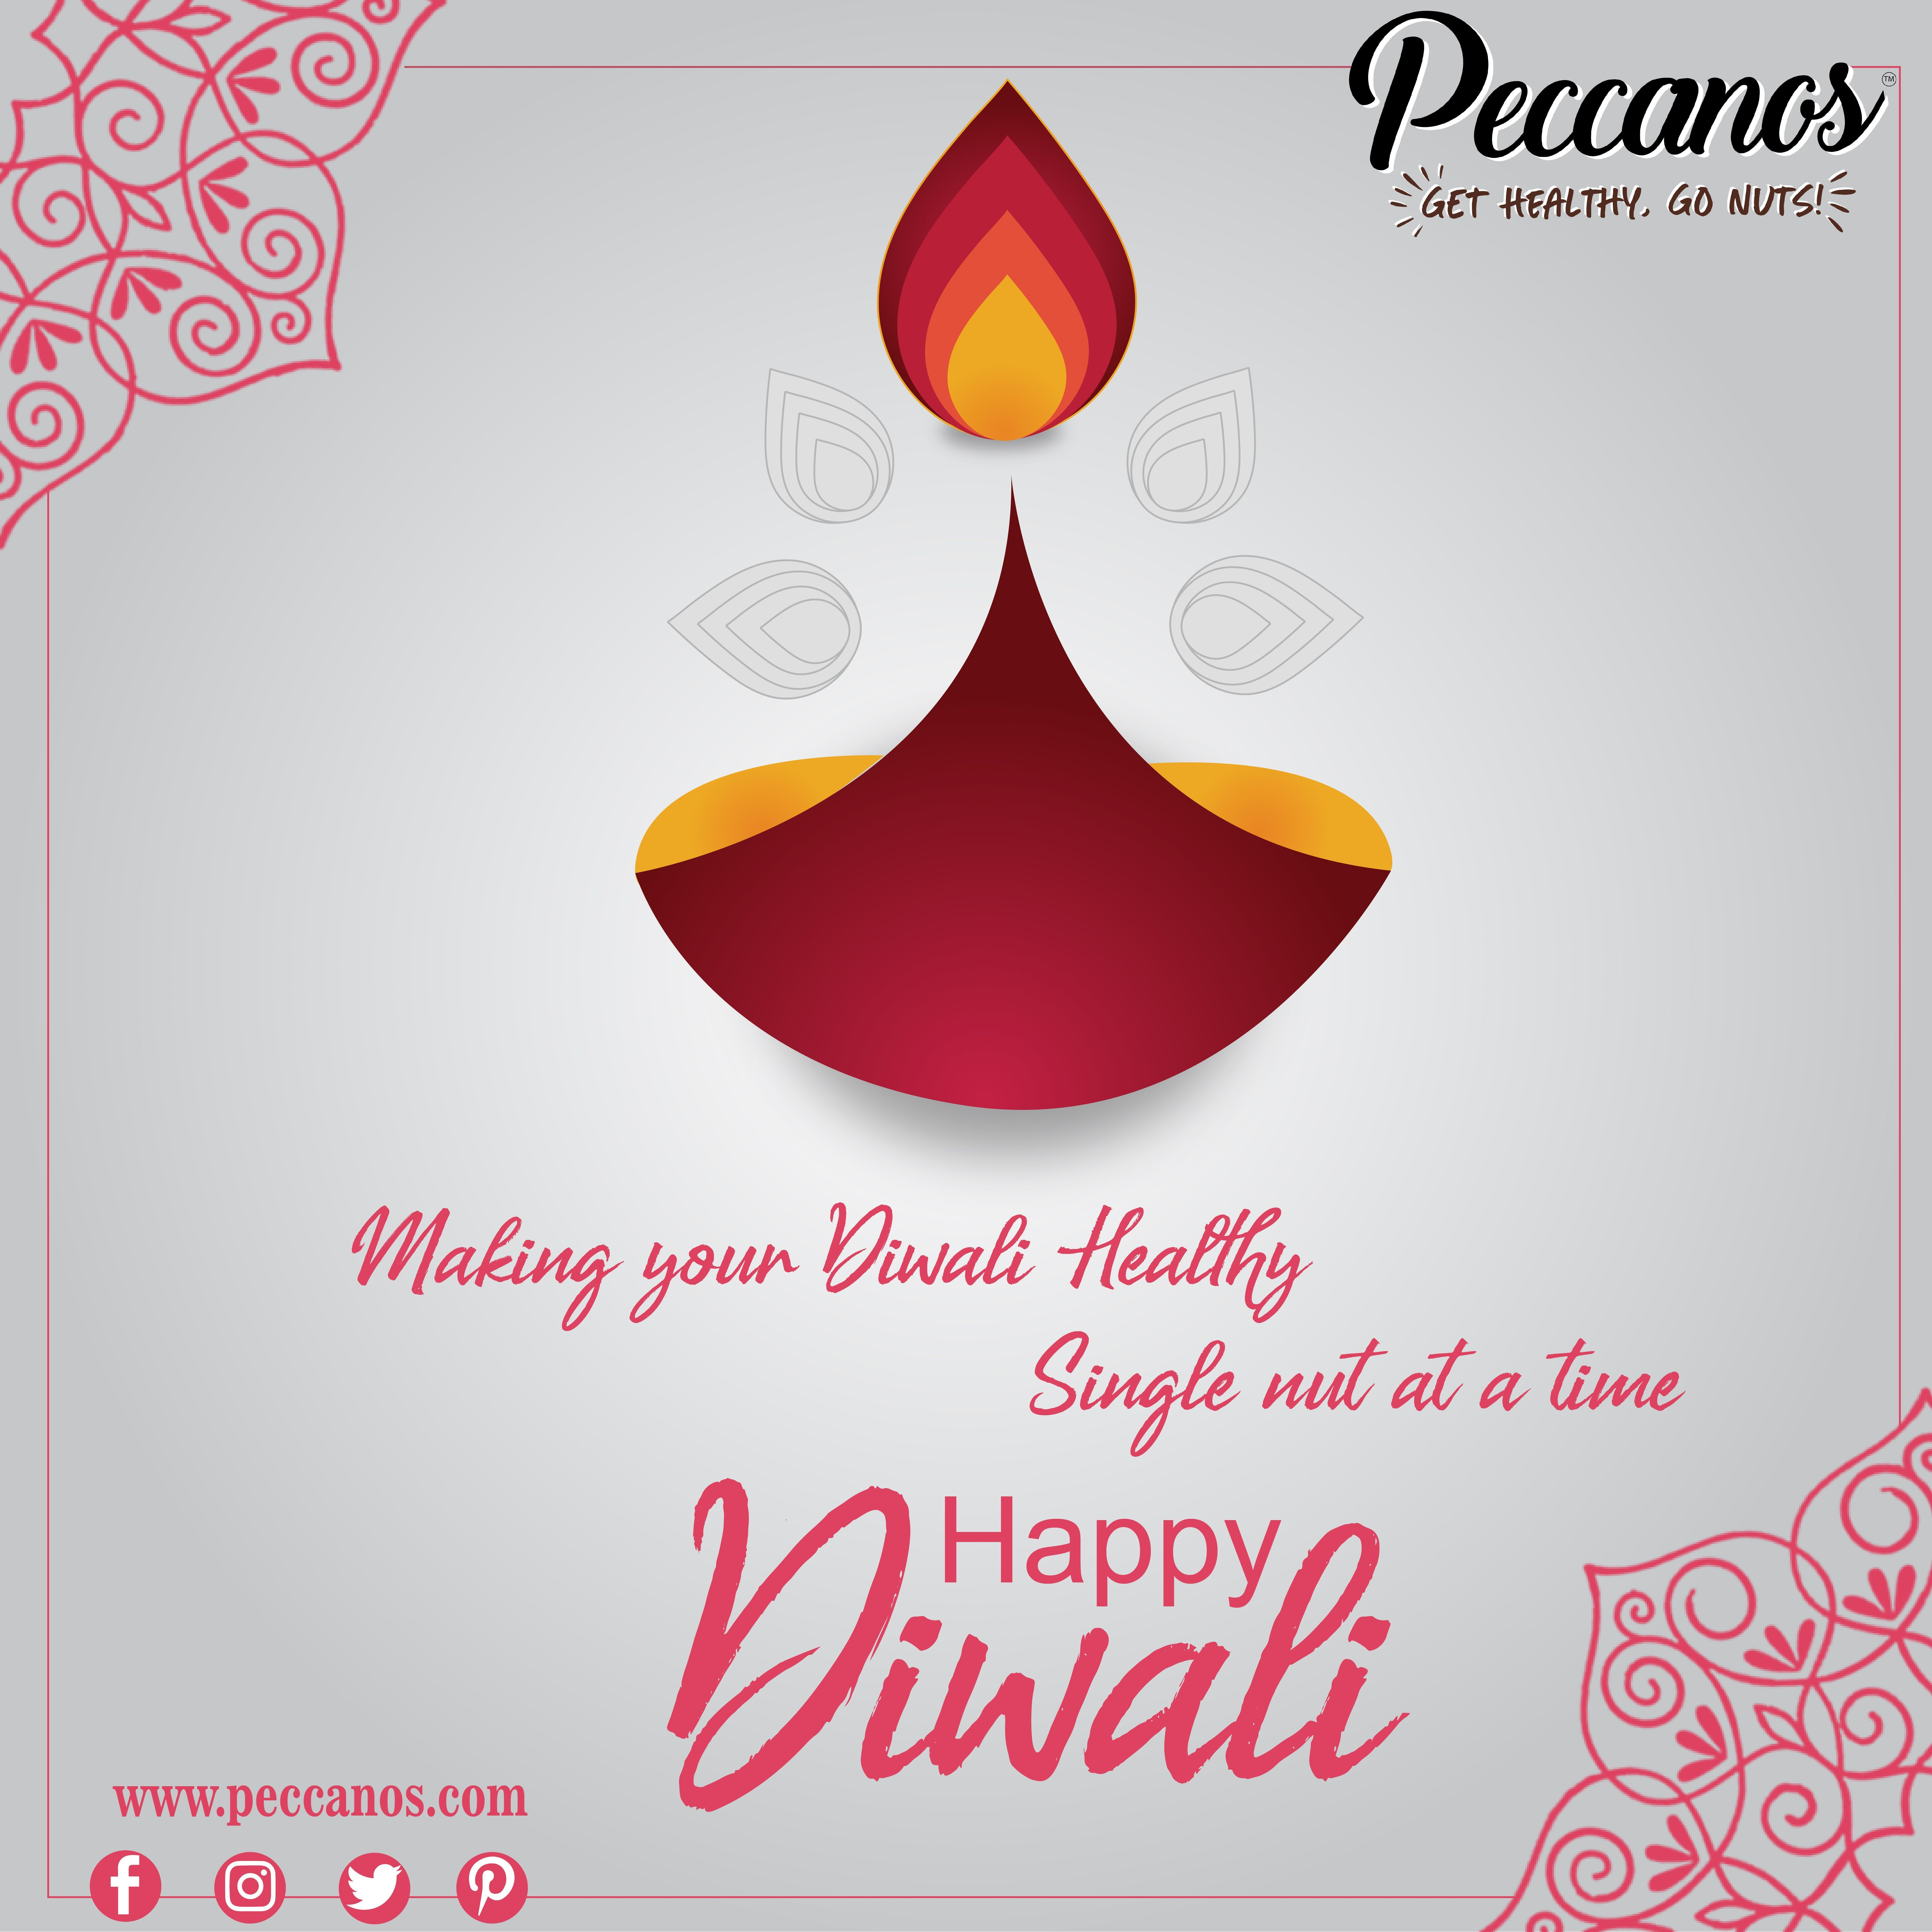 #Happy Diwali  #happydiwaligreetings Happy Diwali  #Greetings from The Peccanos family #Festivities #Happy Diwali #Making your Diwali healthy single nut at a time#Togetherness #health #happiness #prosperity #peace #love #Peccanos #GetHealthy #GoNuts @Peccanos #DryFruits #Nuts #Seeds #Condiments #Staples #happydiwaligreetings #Happy Diwali  #happydiwaligreetings Happy Diwali  #Greetings from The Peccanos family #Festivities #Happy Diwali #Making your Diwali healthy single nut at a time#Togetherne #happydiwaligreetings